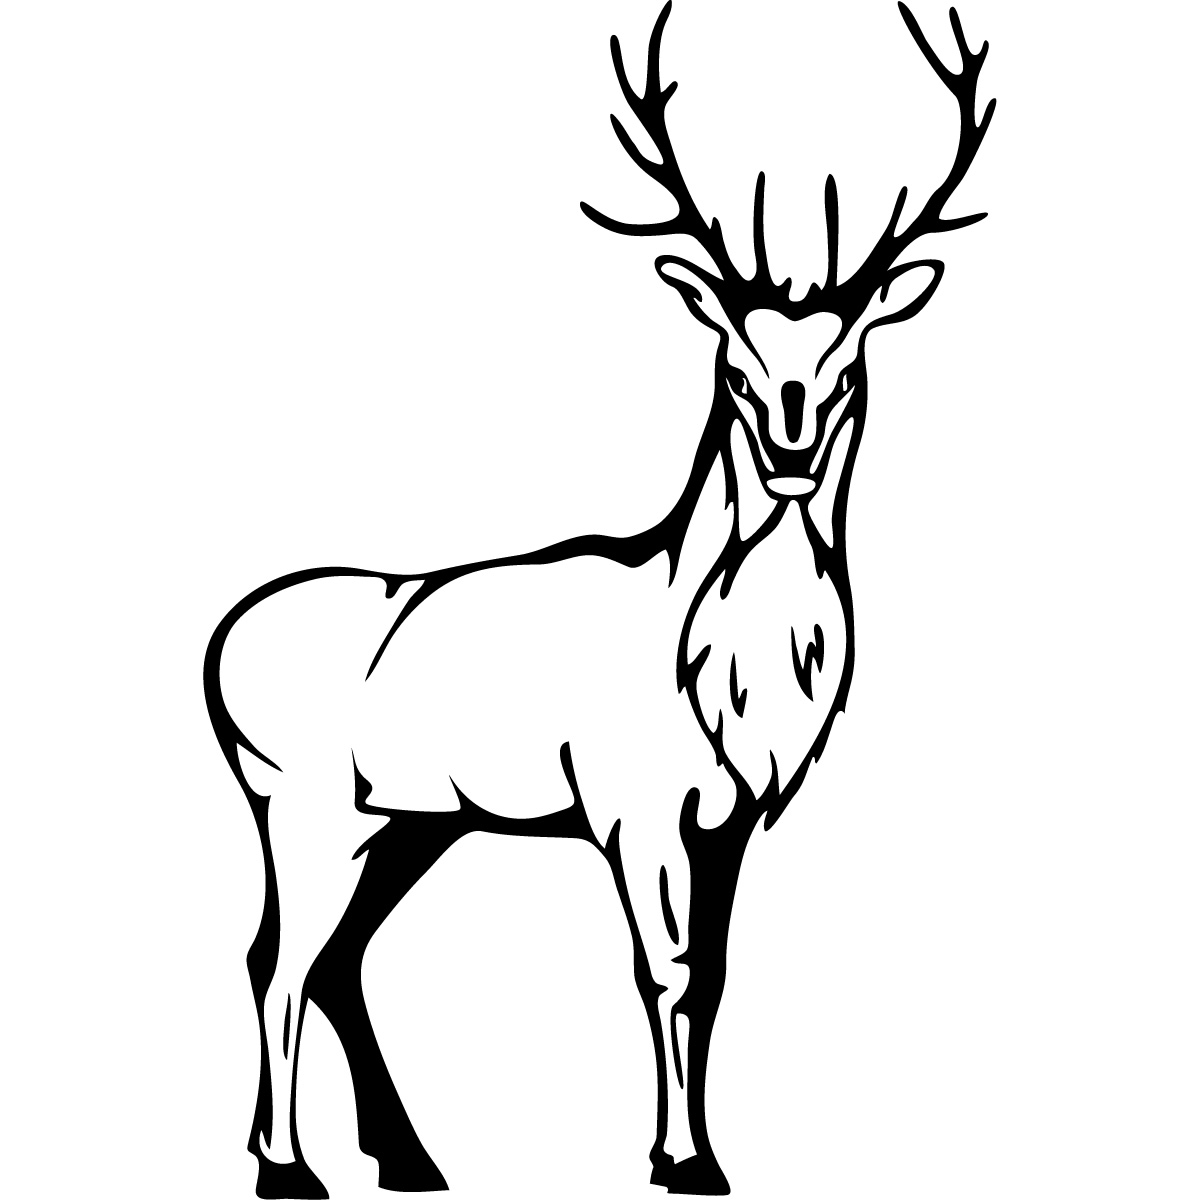 Deer Contour Line Drawing : Line drawing of a deer clipart best